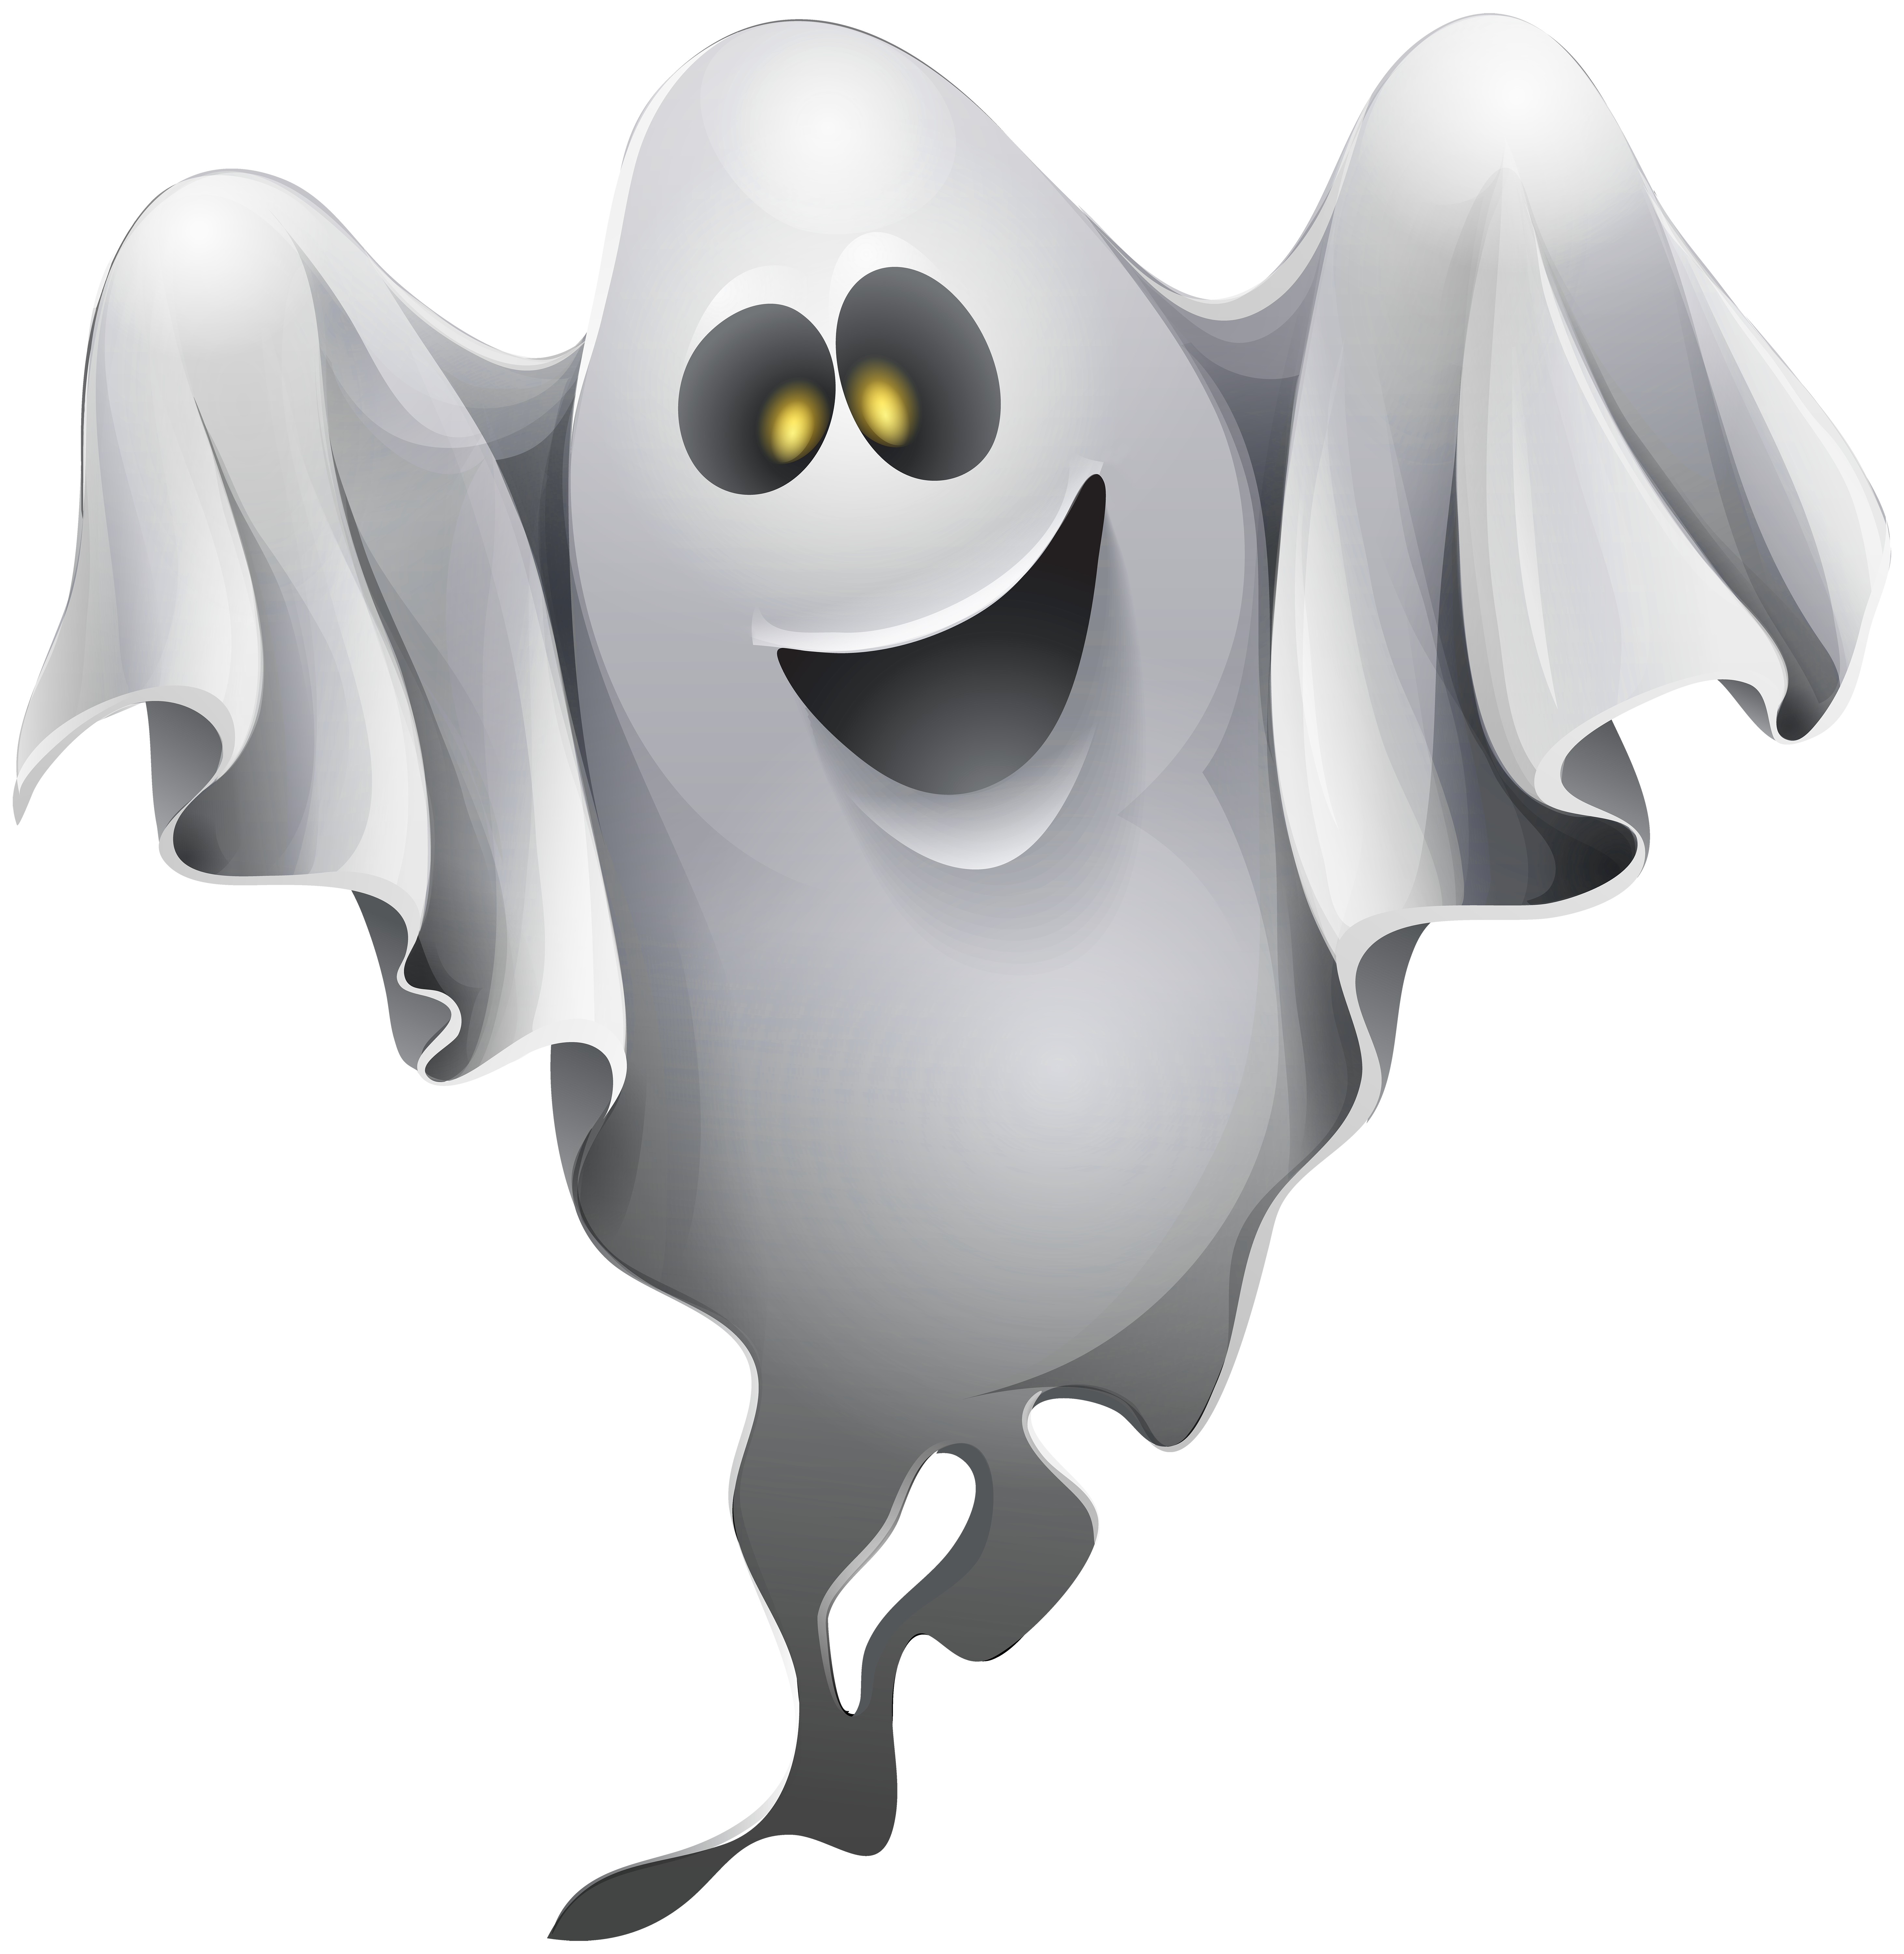 Halloween Ghost Clipart PNG Image - PurePNG | Free ...